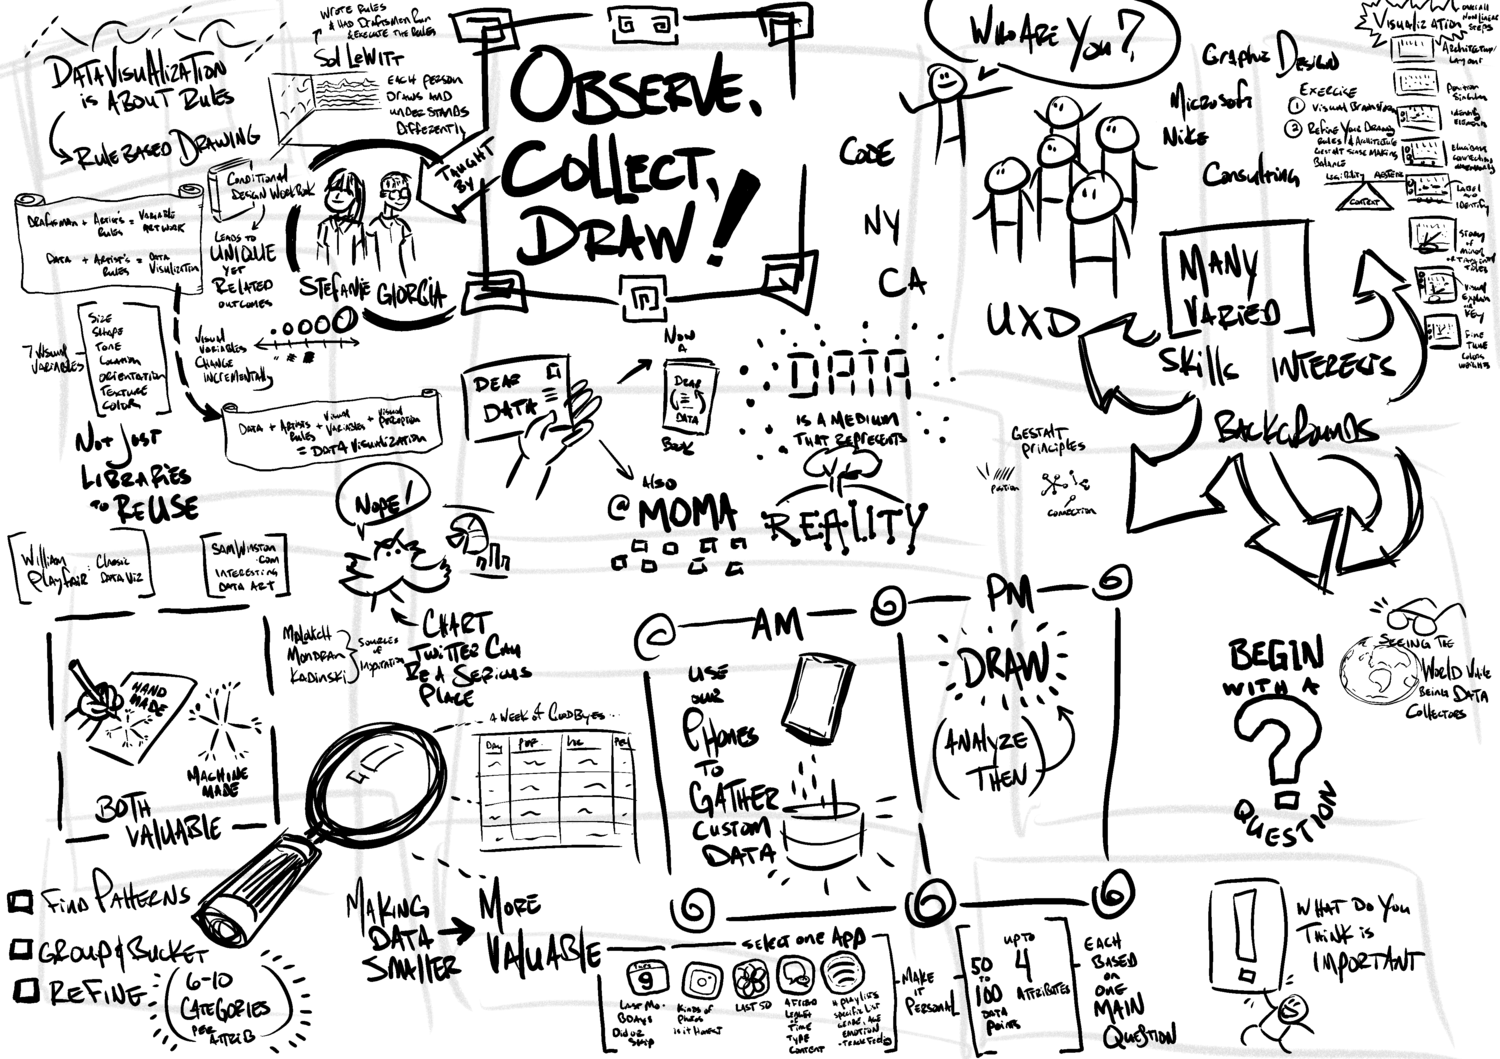 attended the observe collect draw workshop interactive storyteller